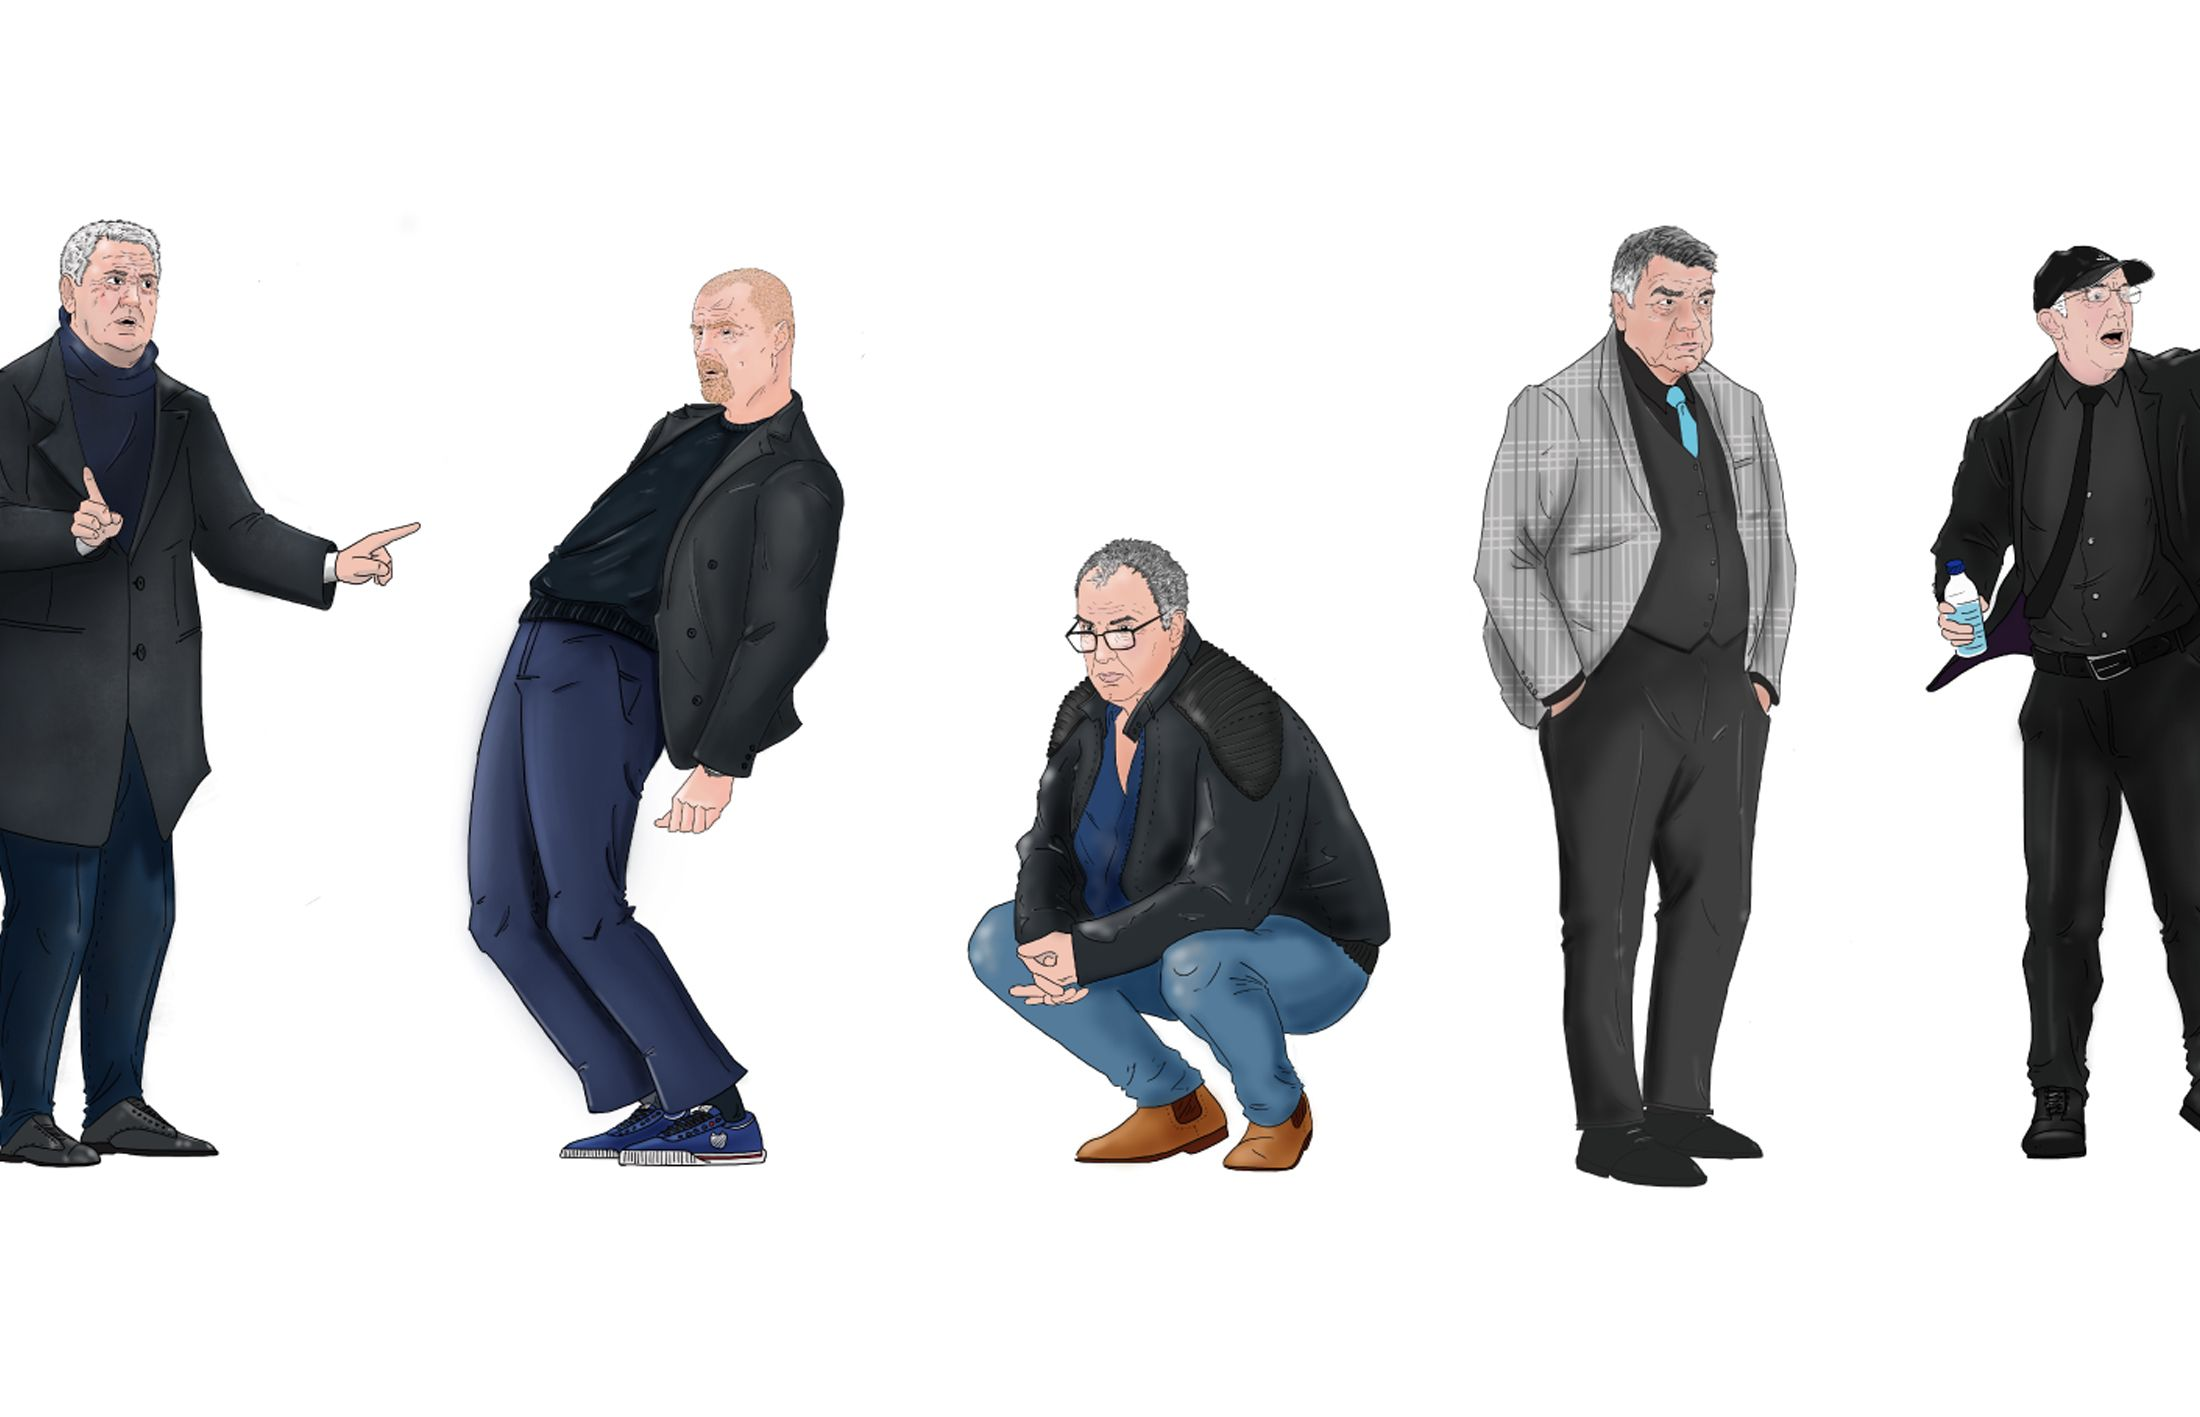 Football managers style reimagined